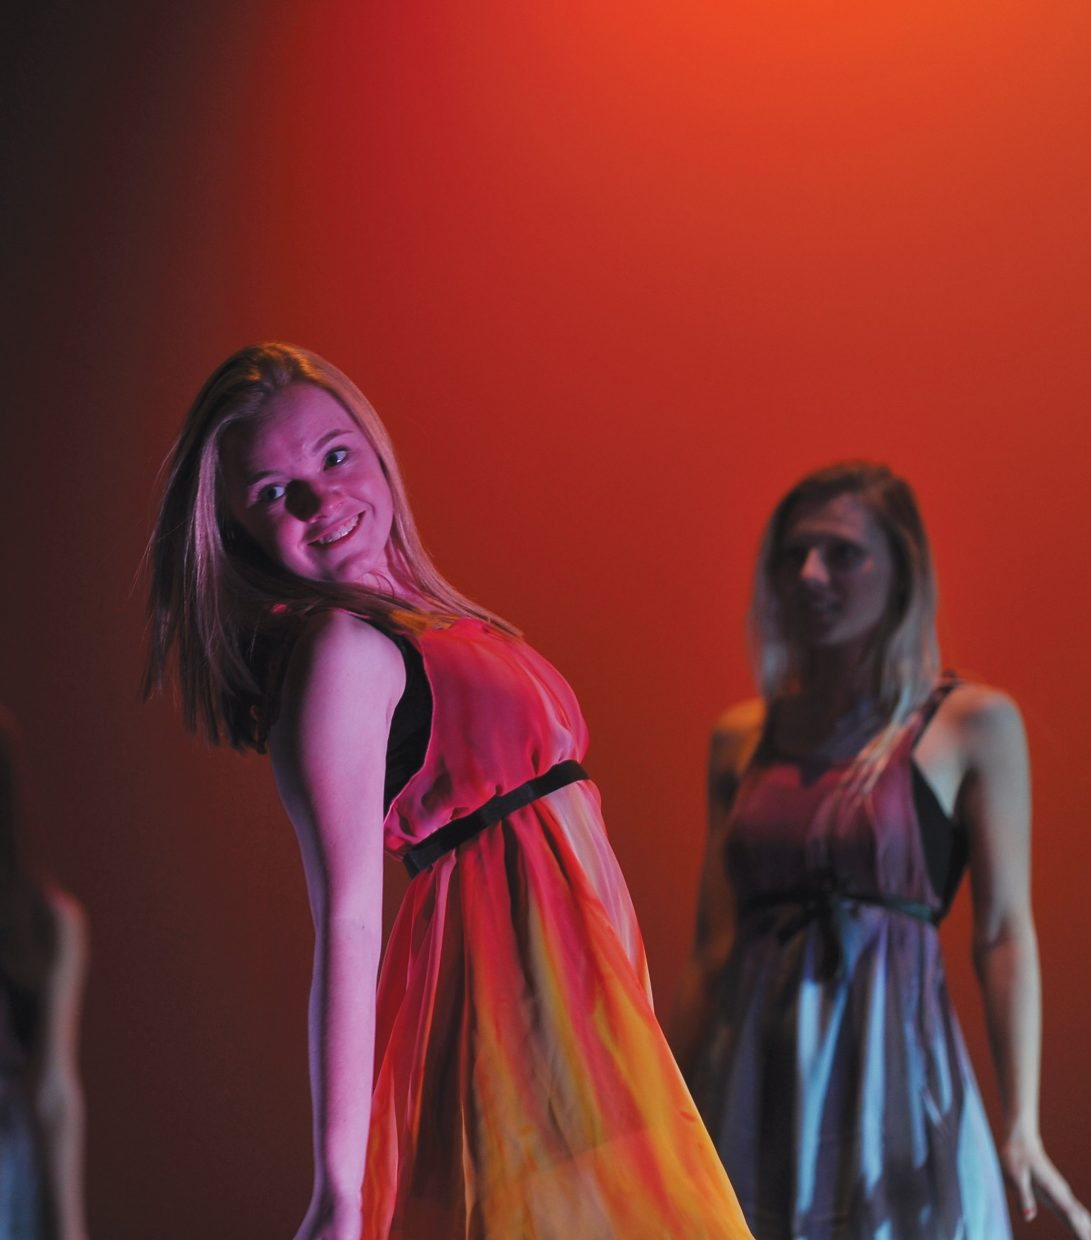 Steamboat Springs High School freshman Jessie Selby performs during a dress rehearsal for this year's Dance Showcase, which will take place in the Steamboat Springs High School auditorium at 7 p.m. Thursday, Friday and Saturday.